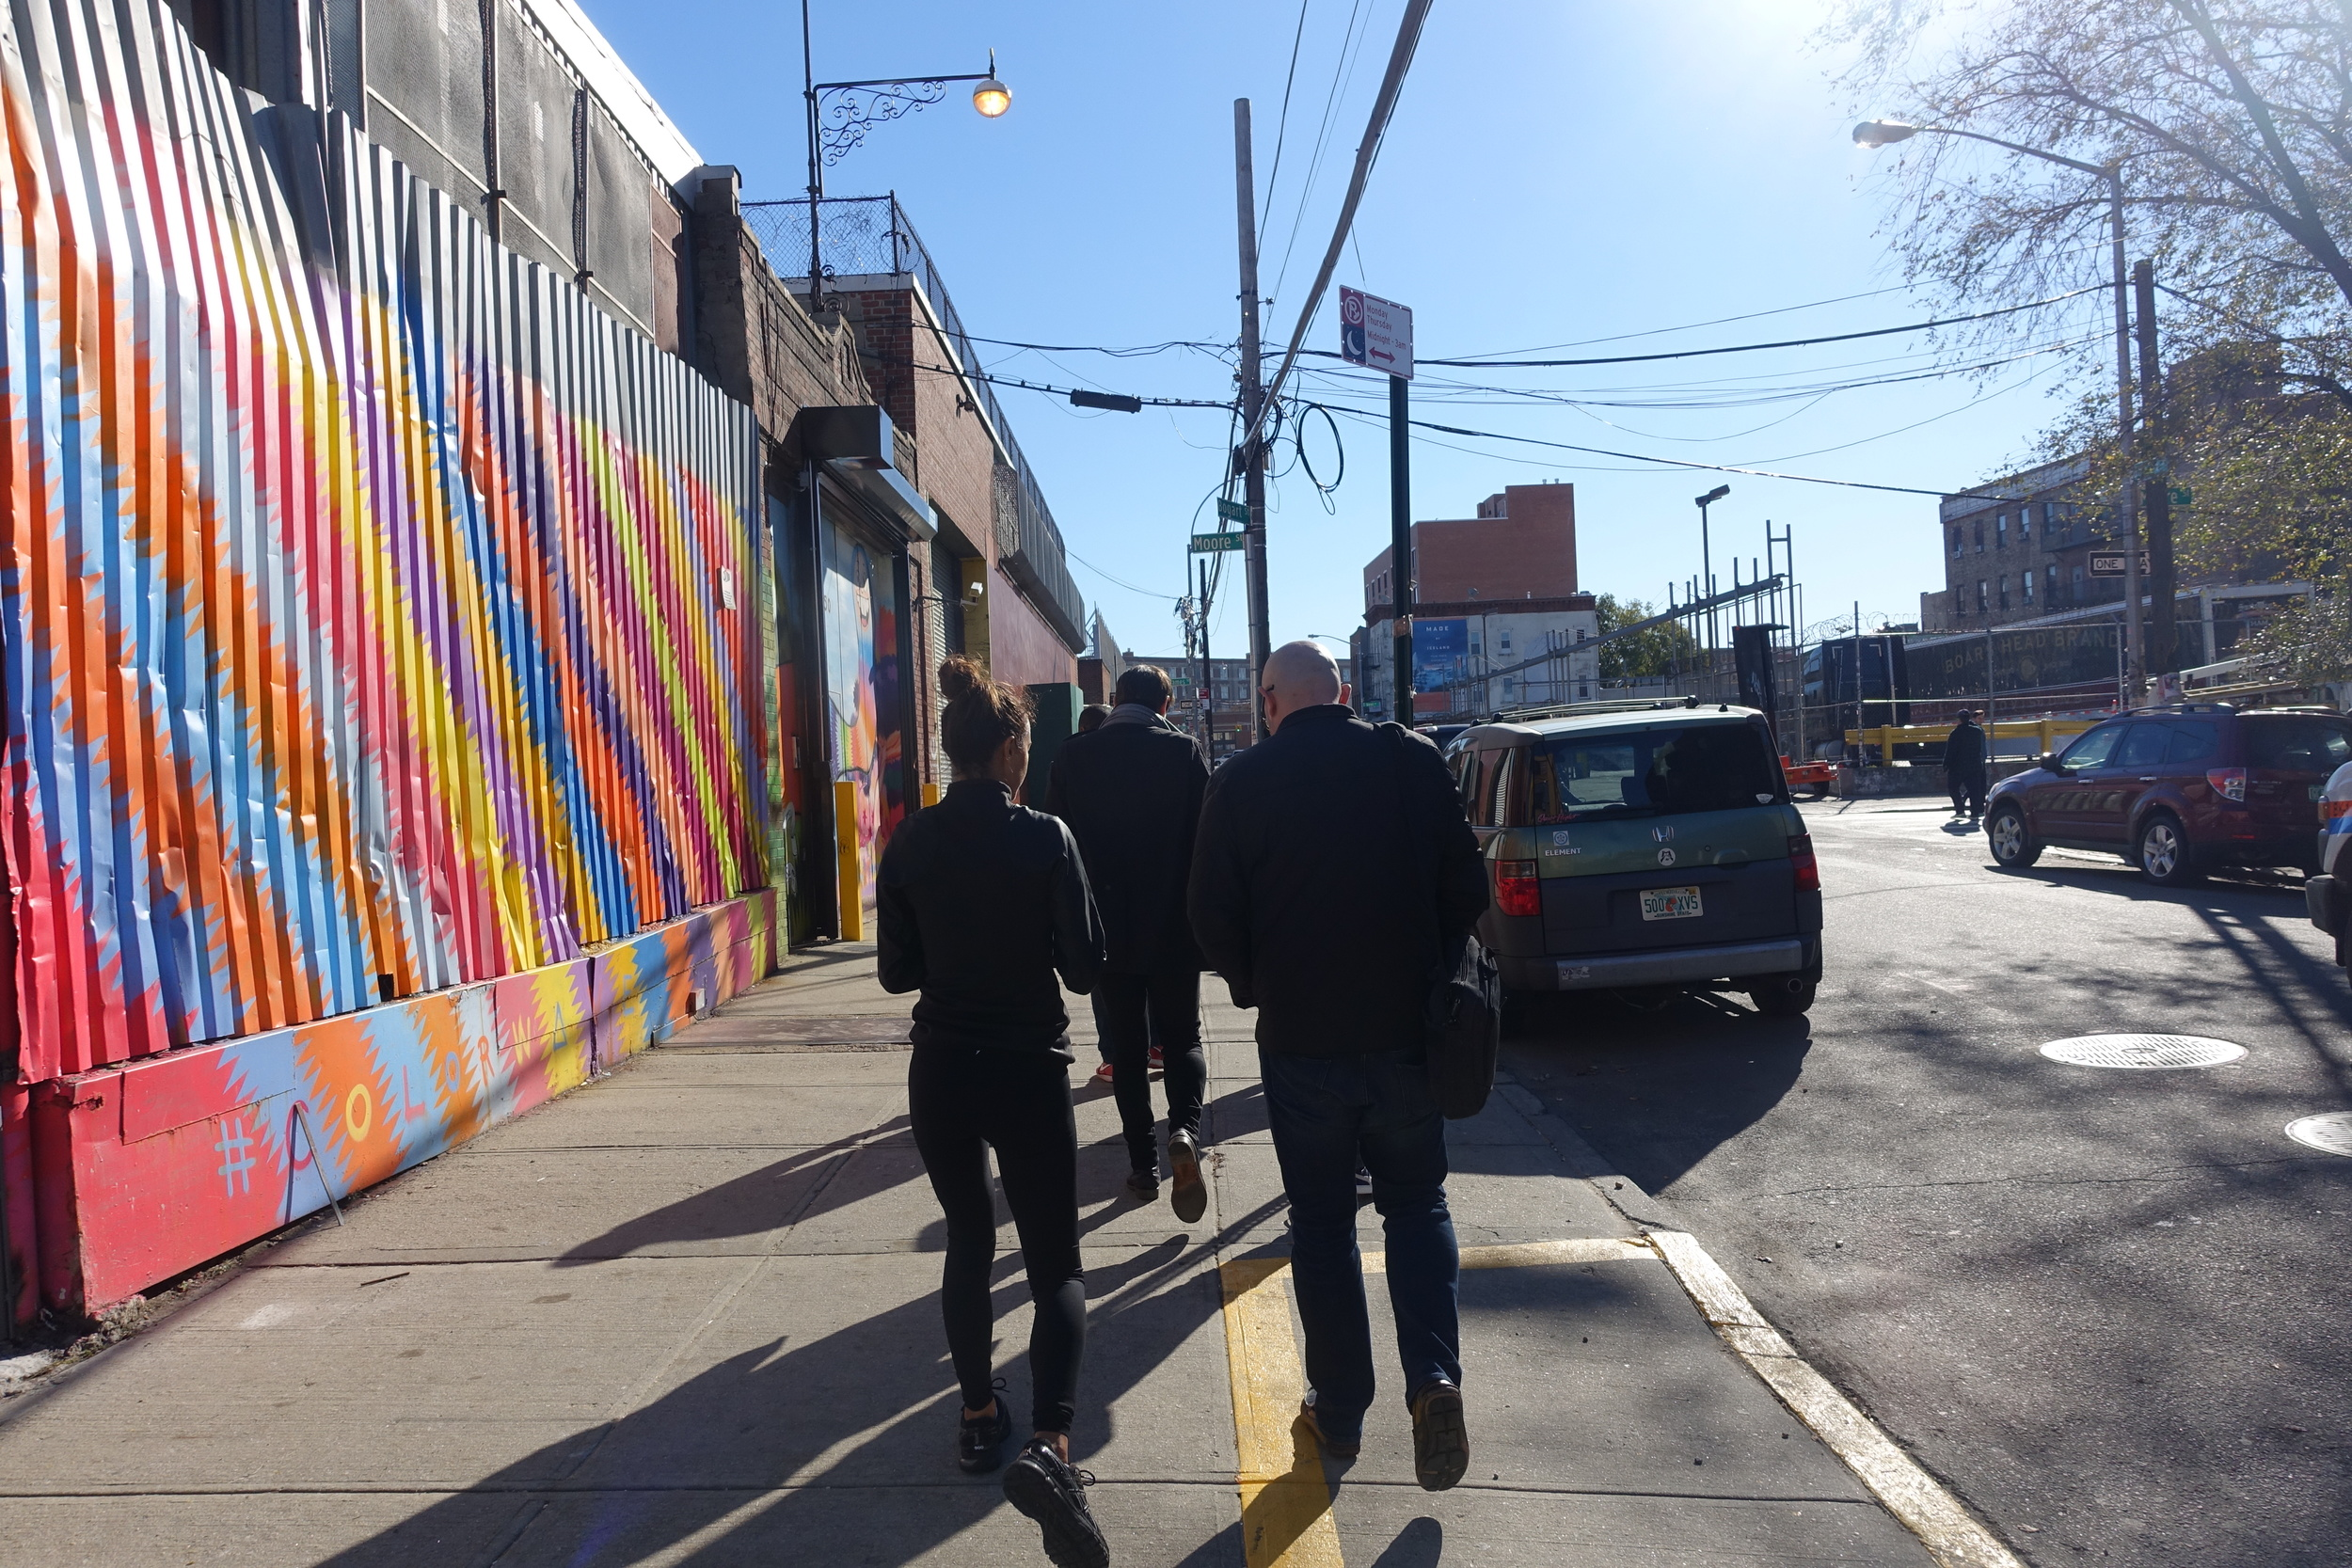 As we wrapped an enlightening day at BTA, Mr. Ward rejoined his students in the hallways as classes changed once more. For us, we were already playing hookie so it was now time for us to head to Roberta's in Bushwick for a proper pizza feast.